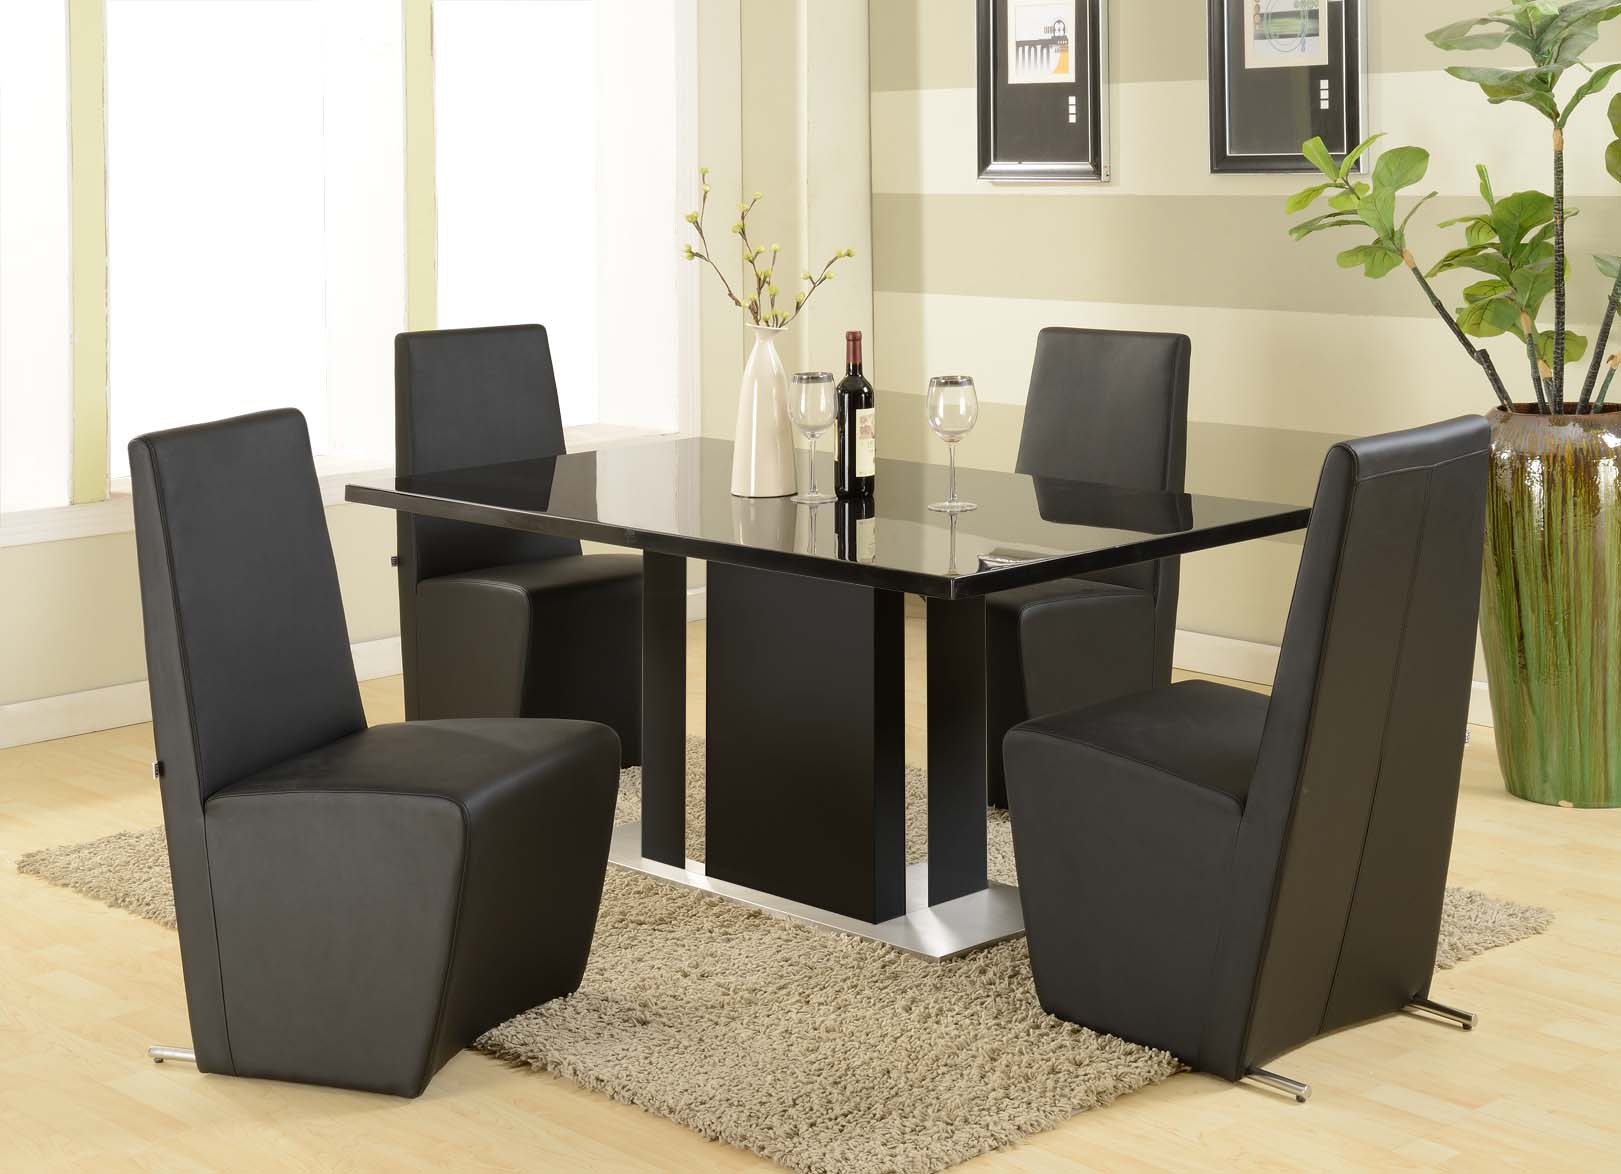 Wonderful Dining Table and Chair Sets 1621 x 1174 · 155 kB · jpeg